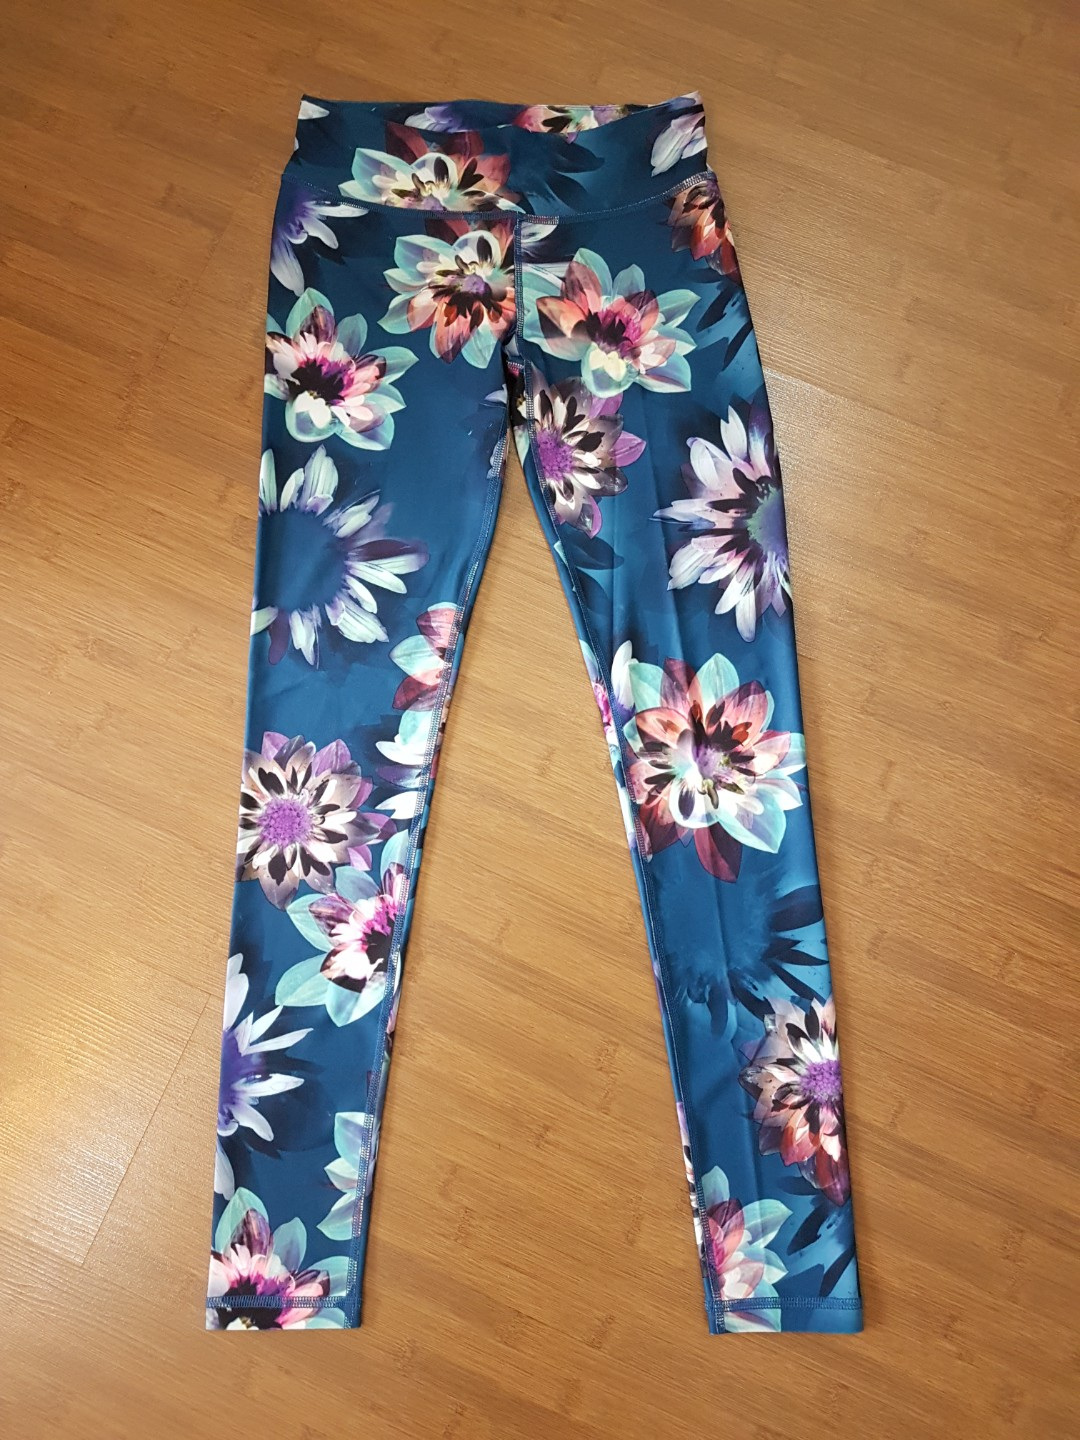 4583feacea04c2 Aeropostale Live Love Dream Floral Yoga Leggings Tights, Sports, Sports  Apparel on Carousell